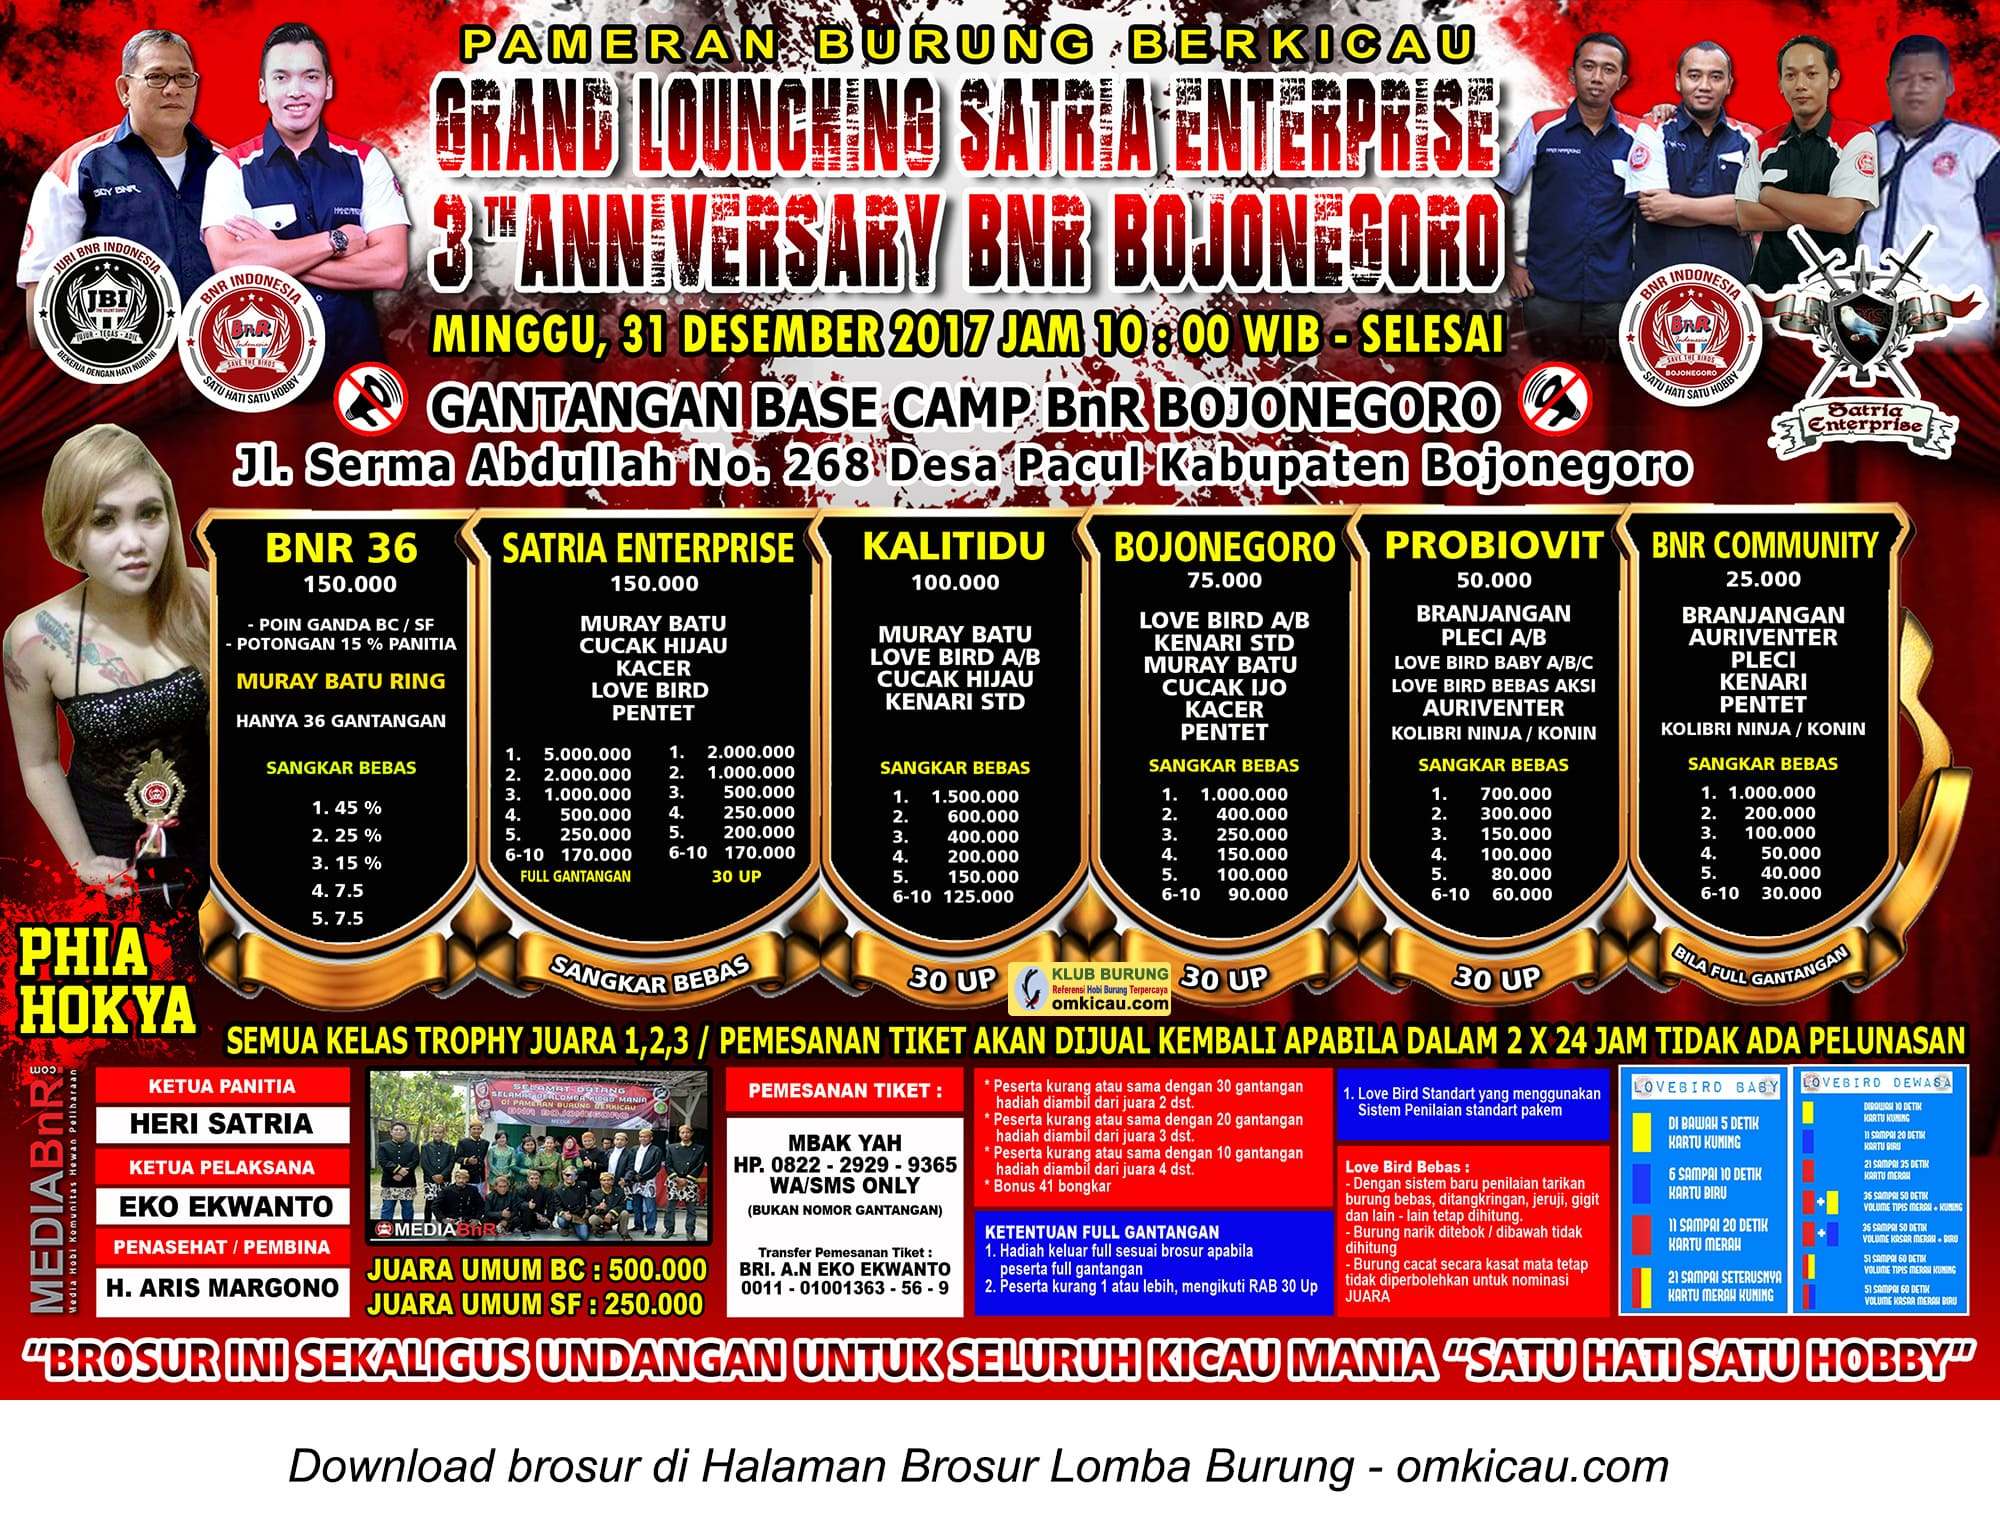 Grand Launching Satria Enterprise